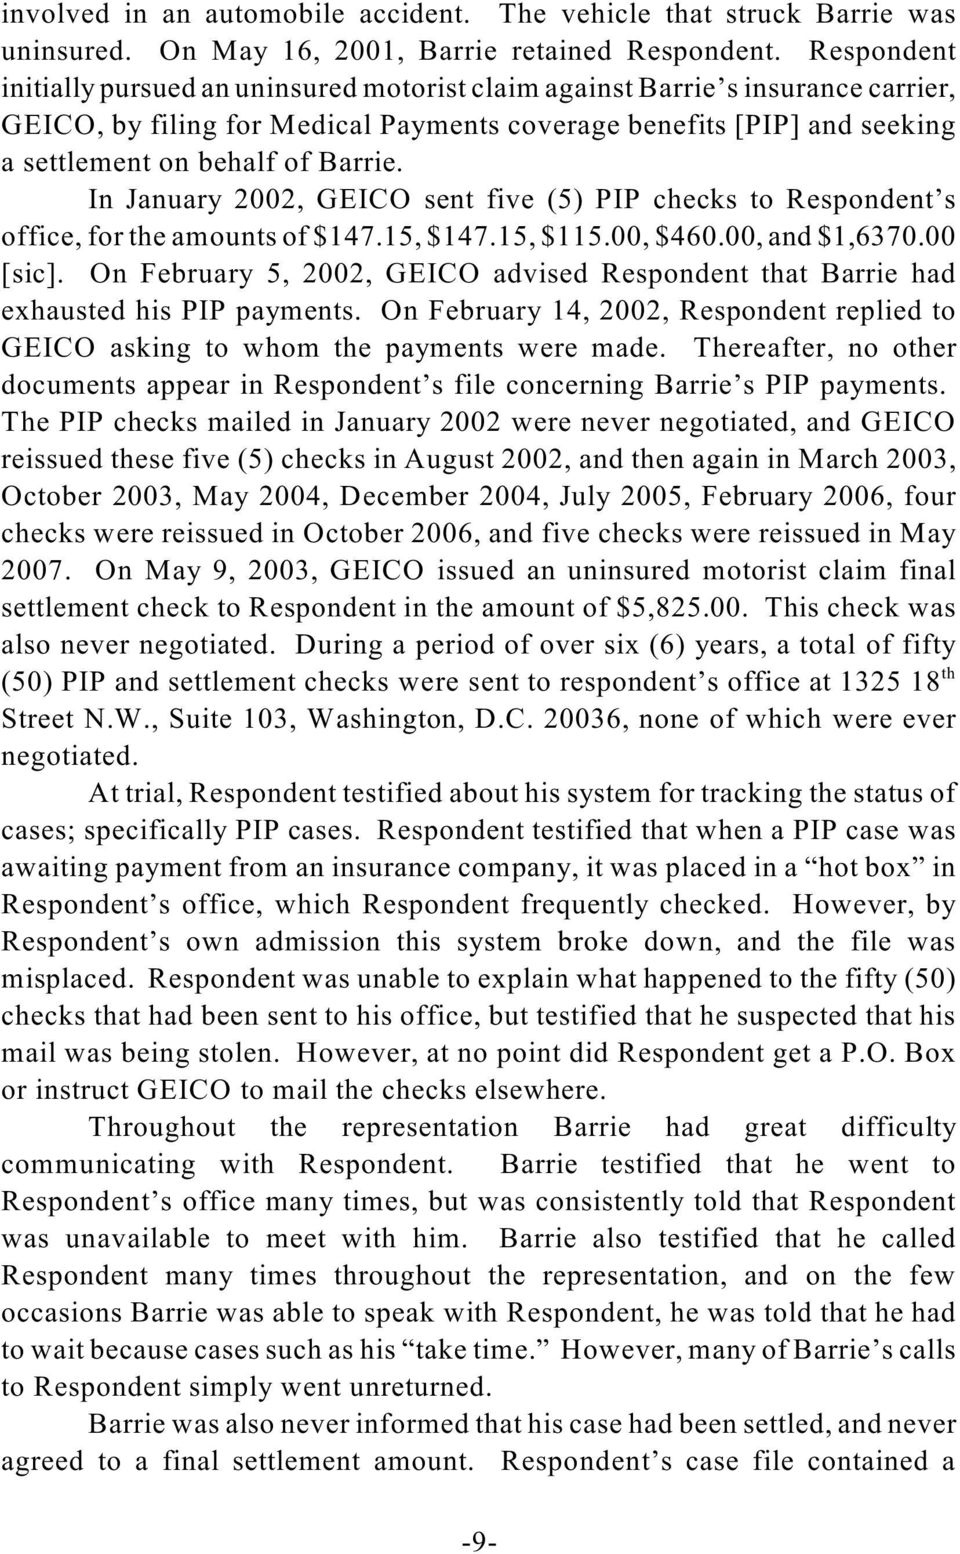 In January 2002, GEICO sent five (5) PIP checks to Respondent s office, for the amounts of $147.15, $147.15, $115.00, $460.00, and $1,6370.00 [sic].